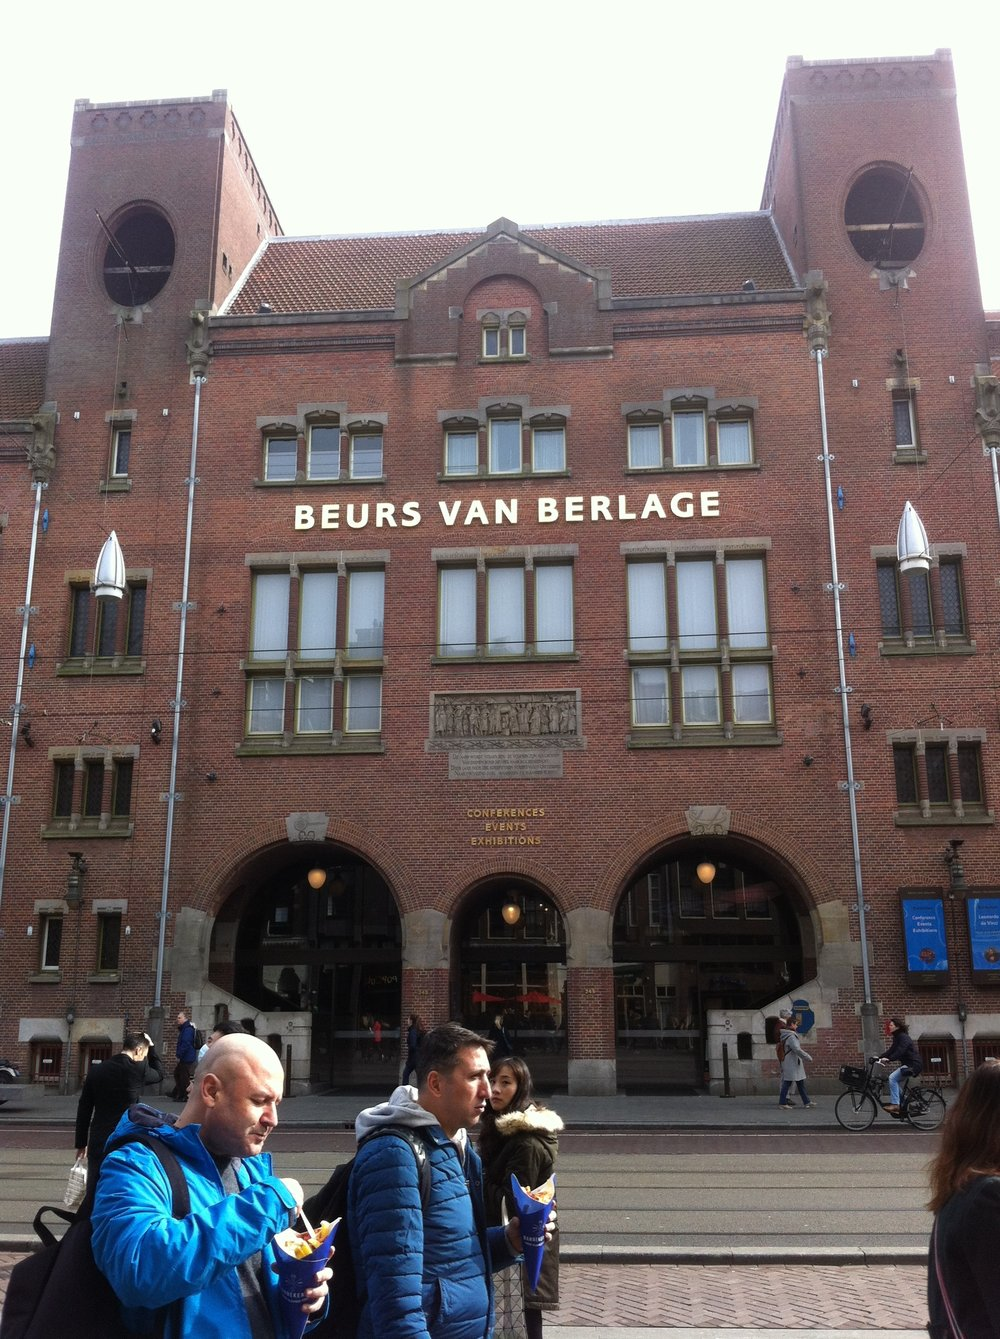 Beurs Van Berlage - the inredible venue for the conference which was originally the Amsterdam stock exchange.